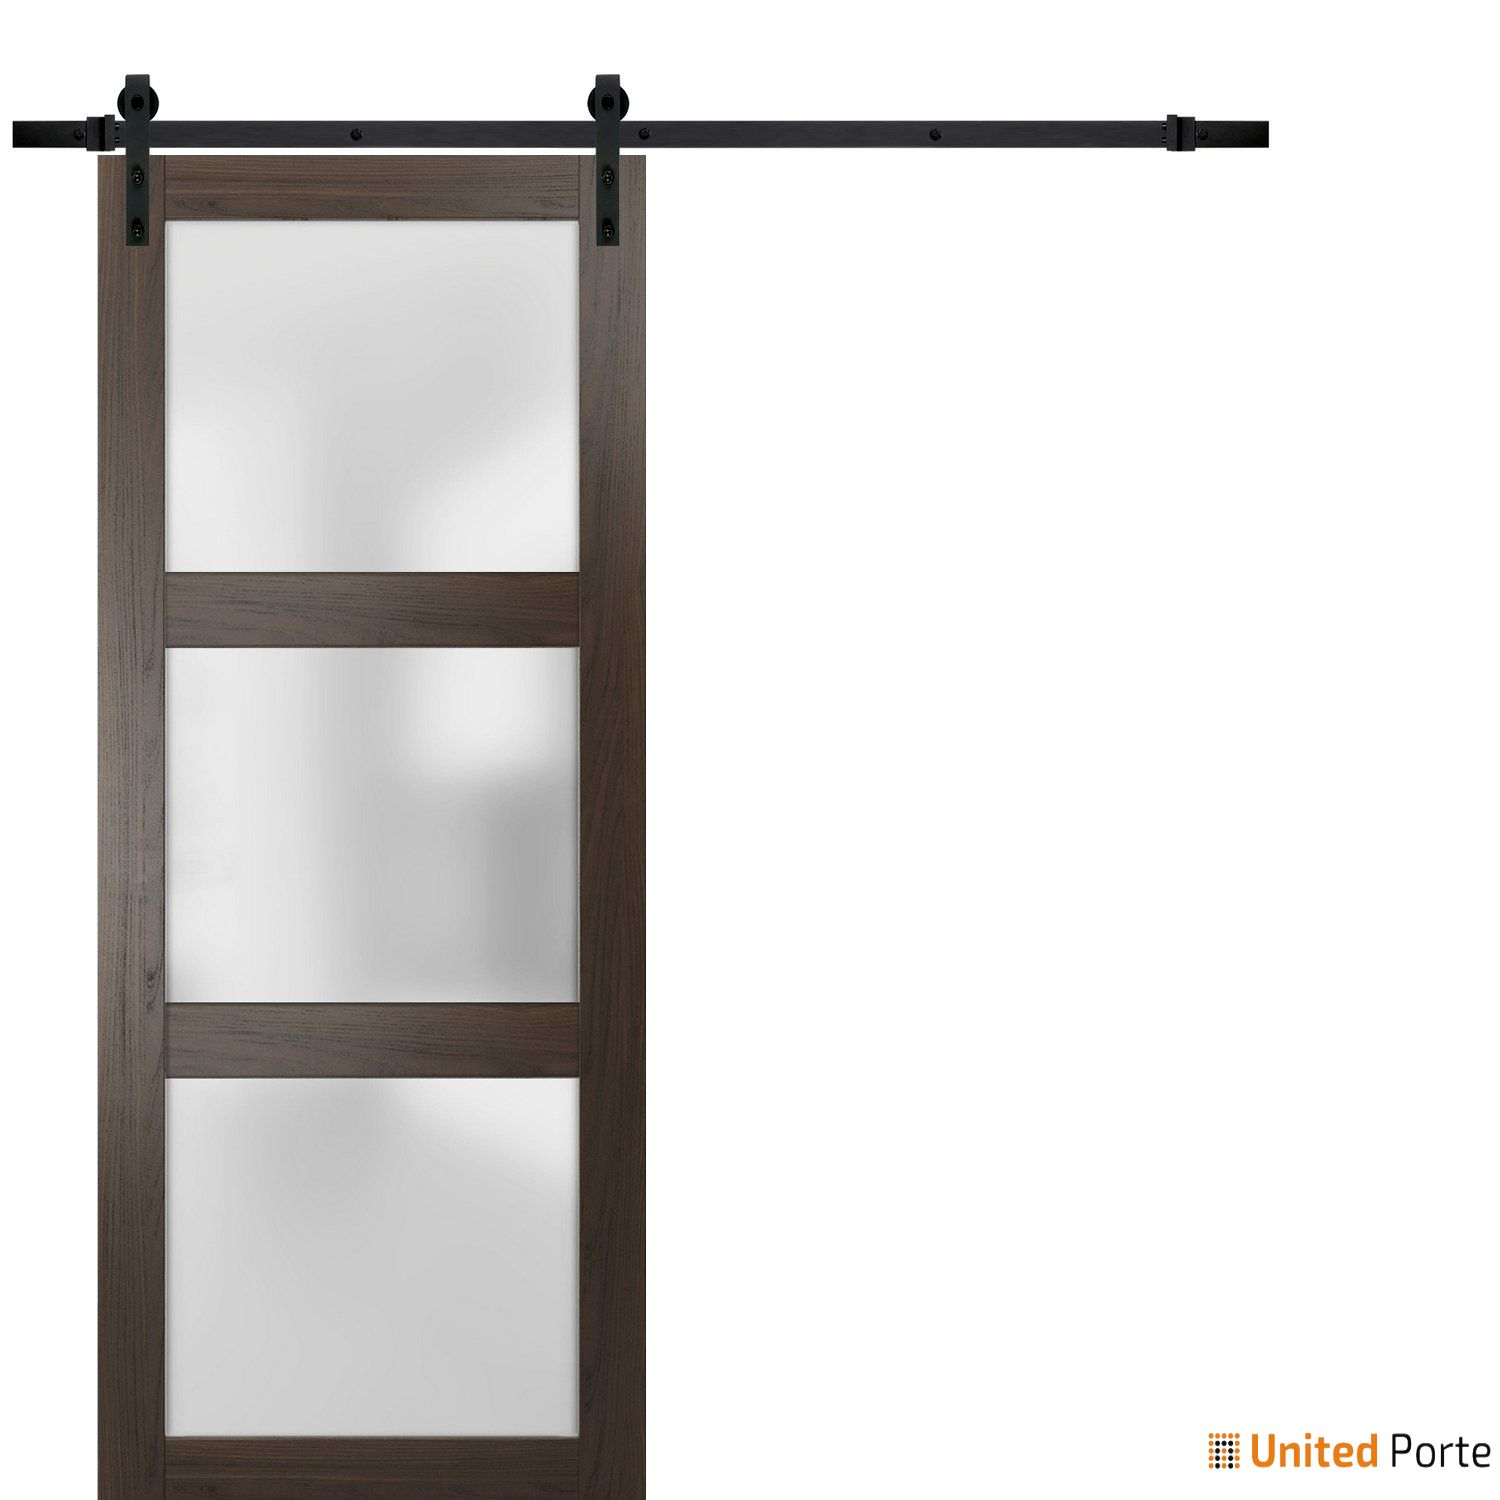 Lucia 2552 Chocolate Ash Sturdy Barn Door Frosted Glass with Black Hardware | Solid Panel Interior Barn Doors